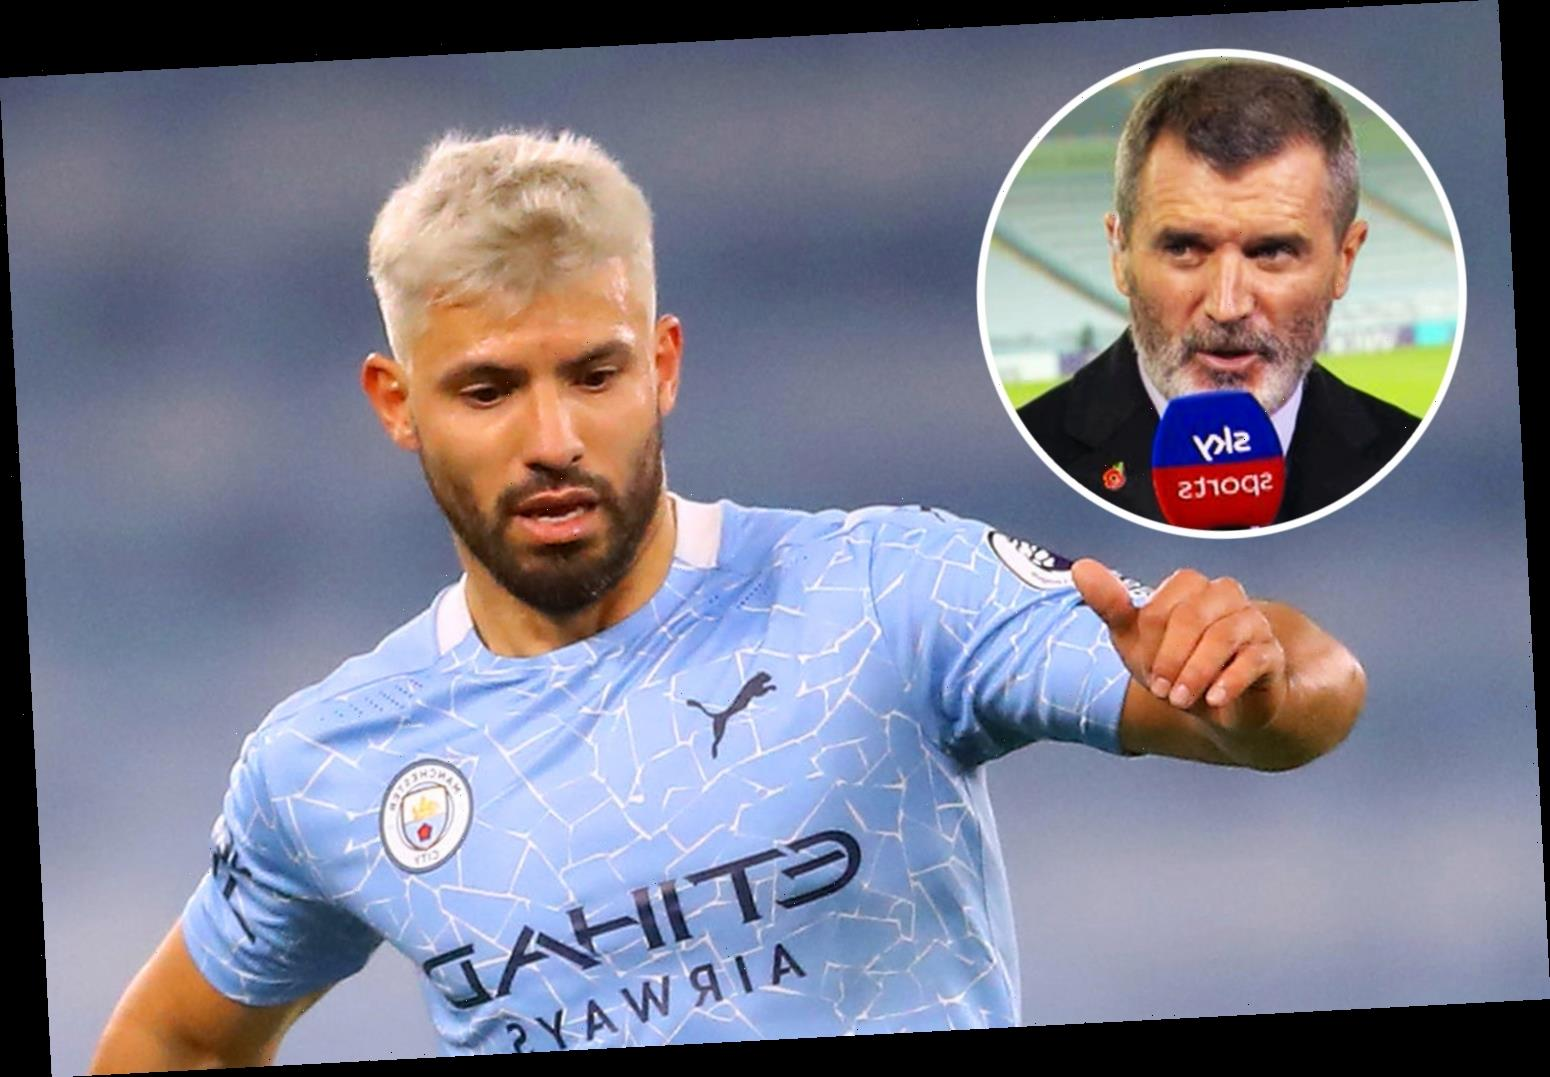 Man Utd hero Roy Keane claims Sergio Aguero returned from injury 'overweight' and admits he was 'worried' about City ace